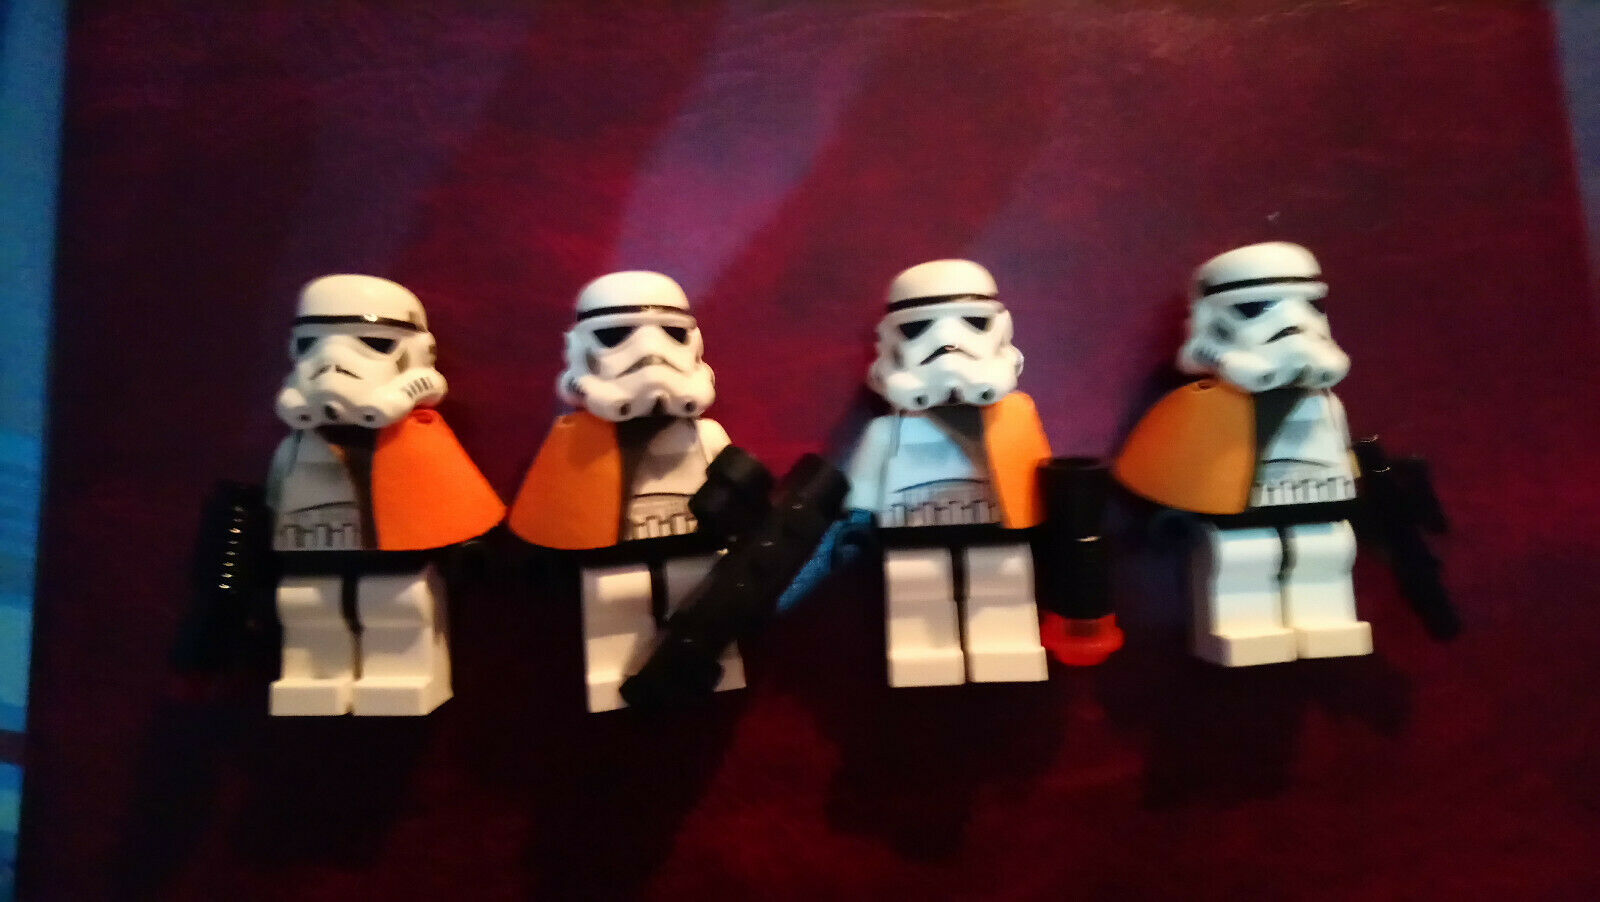 LEGO STARWARS ORIGINAL MINIFIGS -  IMPERIAL SANDTROOPER WITH PAULDRON  SW0109A